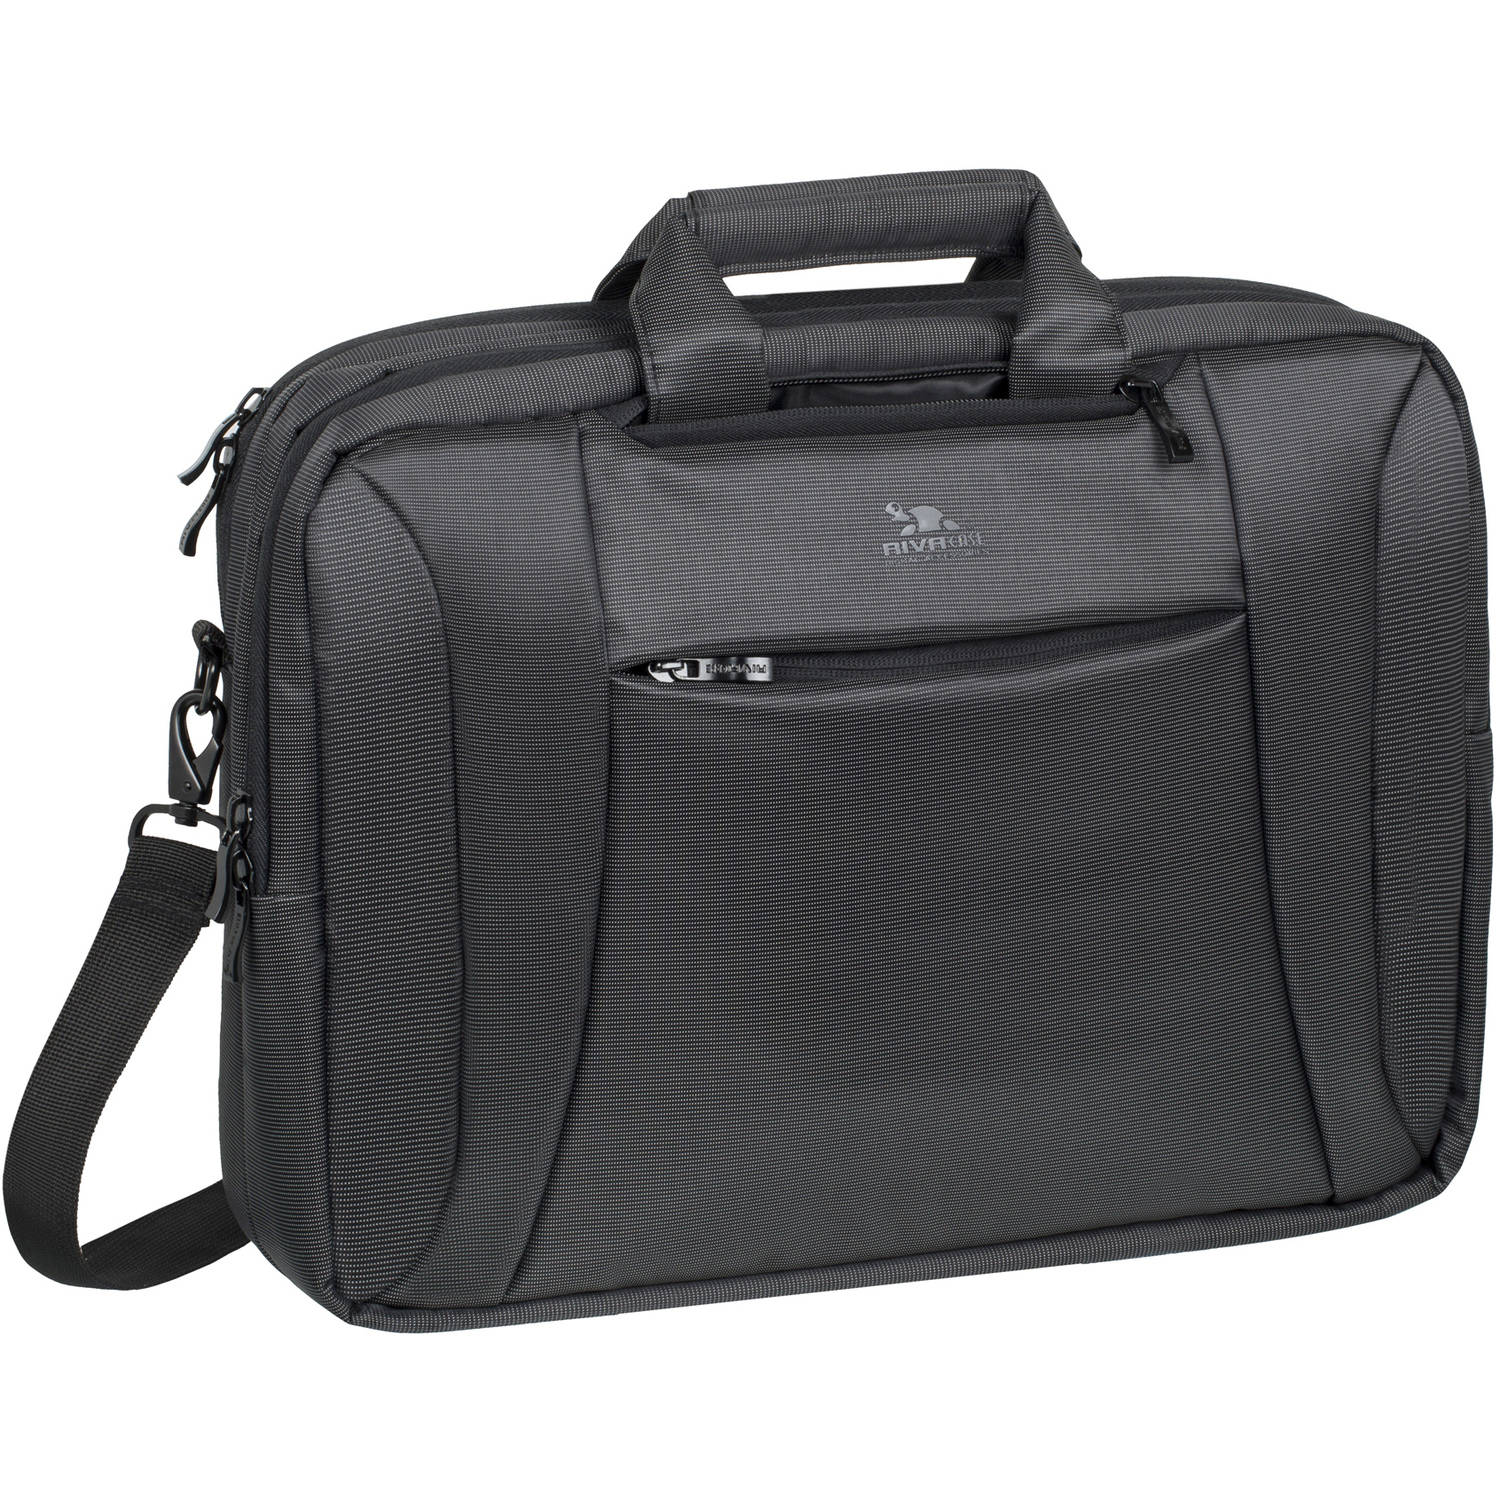 "RIVACASE 8290 Central 16"" Convertible Laptop Bag/Backpack"